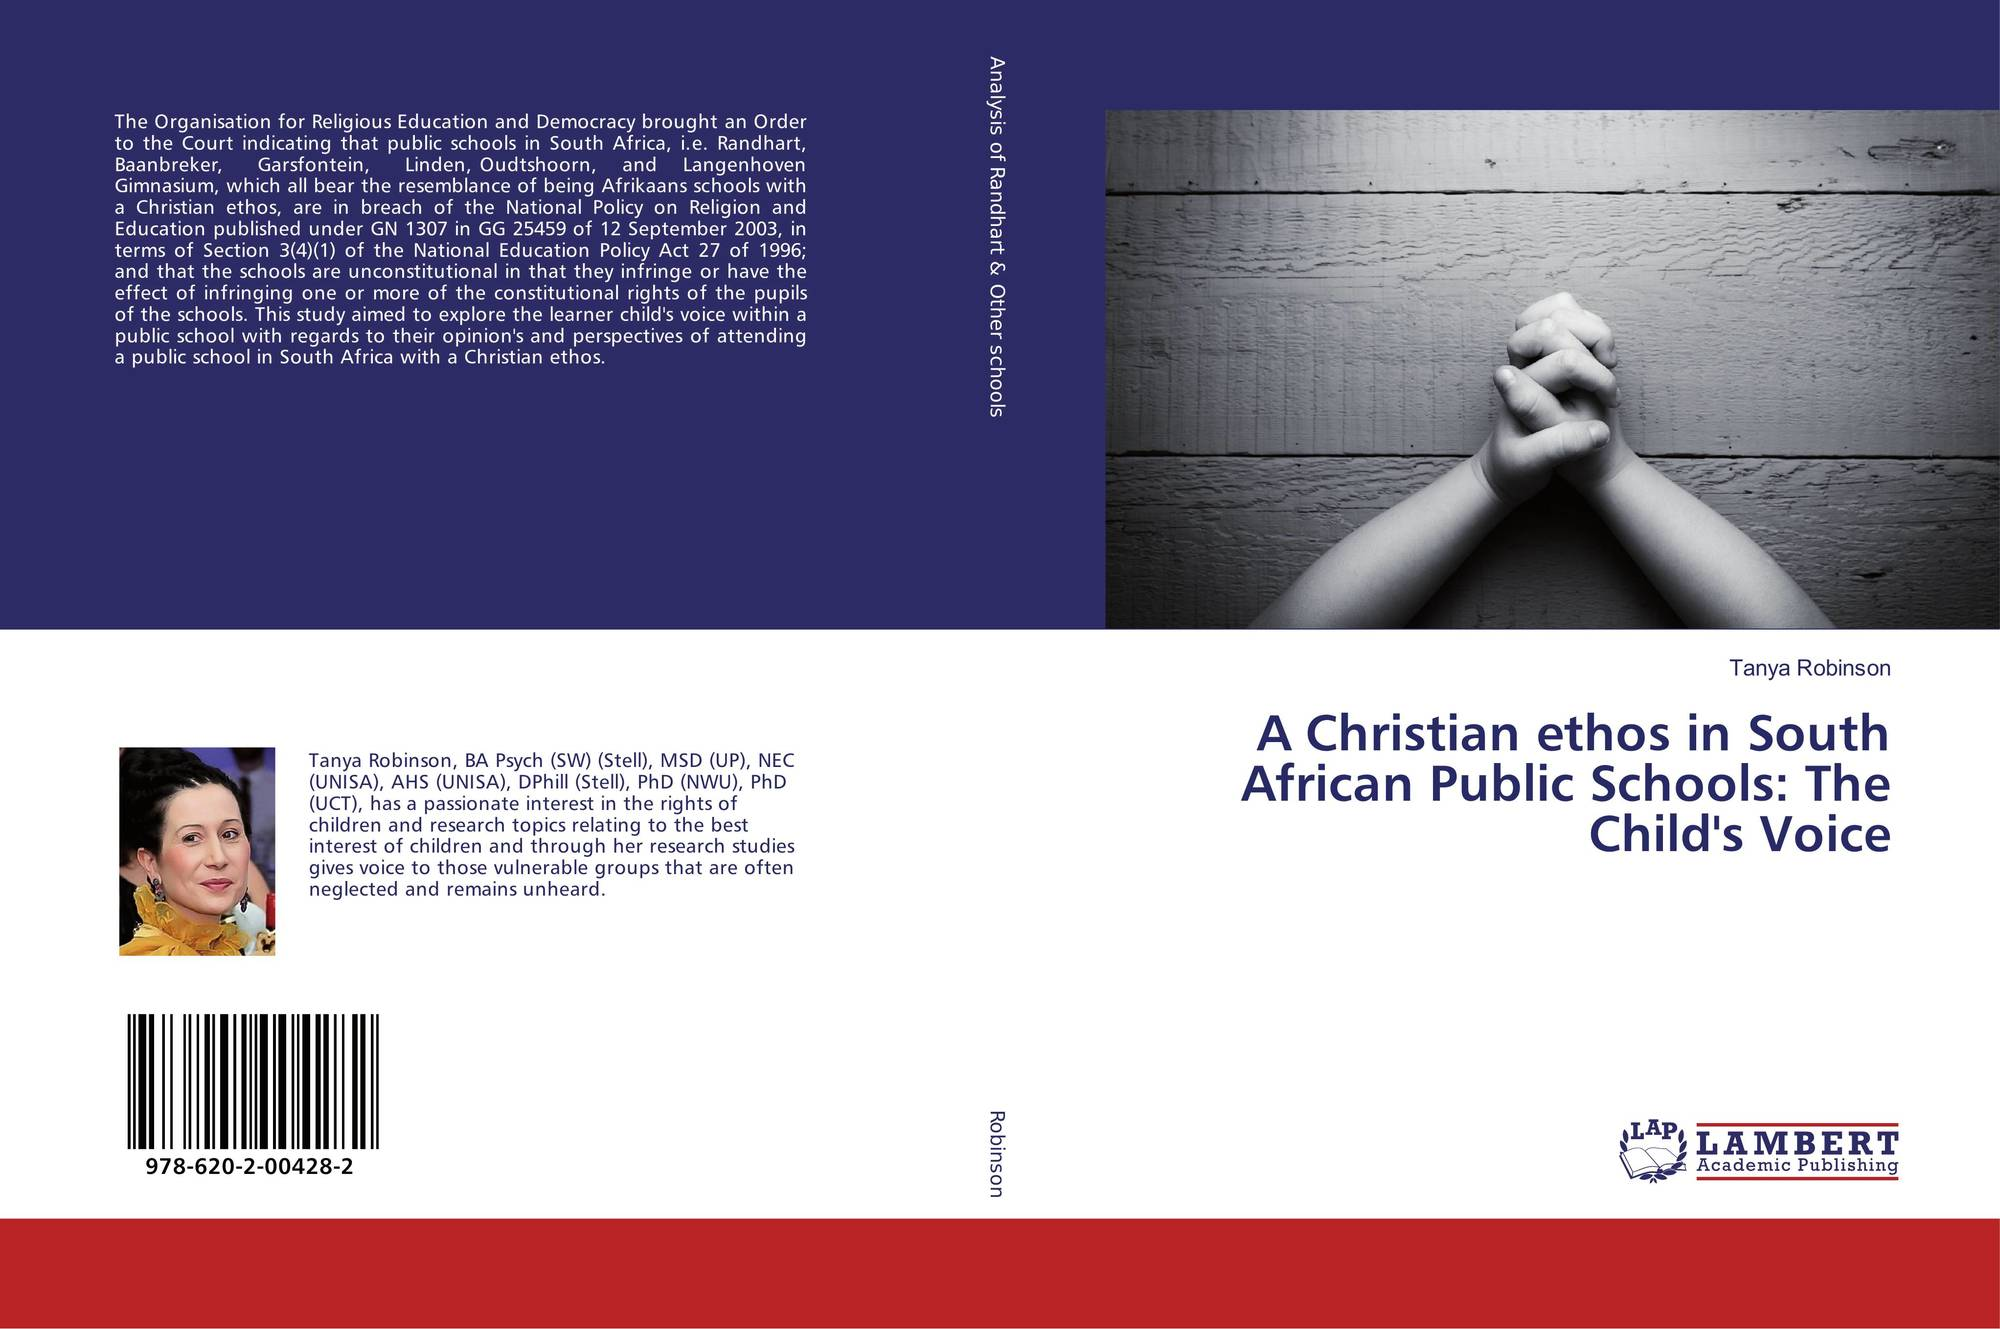 an analysis of the religion in the schools How we reconcile such prophetic insights with our equally passionate commitments to pluralism and multiculturalism is one of the great ques-tions for a religious literary criticism for an adequate reading of the religious dimensions of literary texts, we need languages that are critical and passionate, ecumenical and committed.